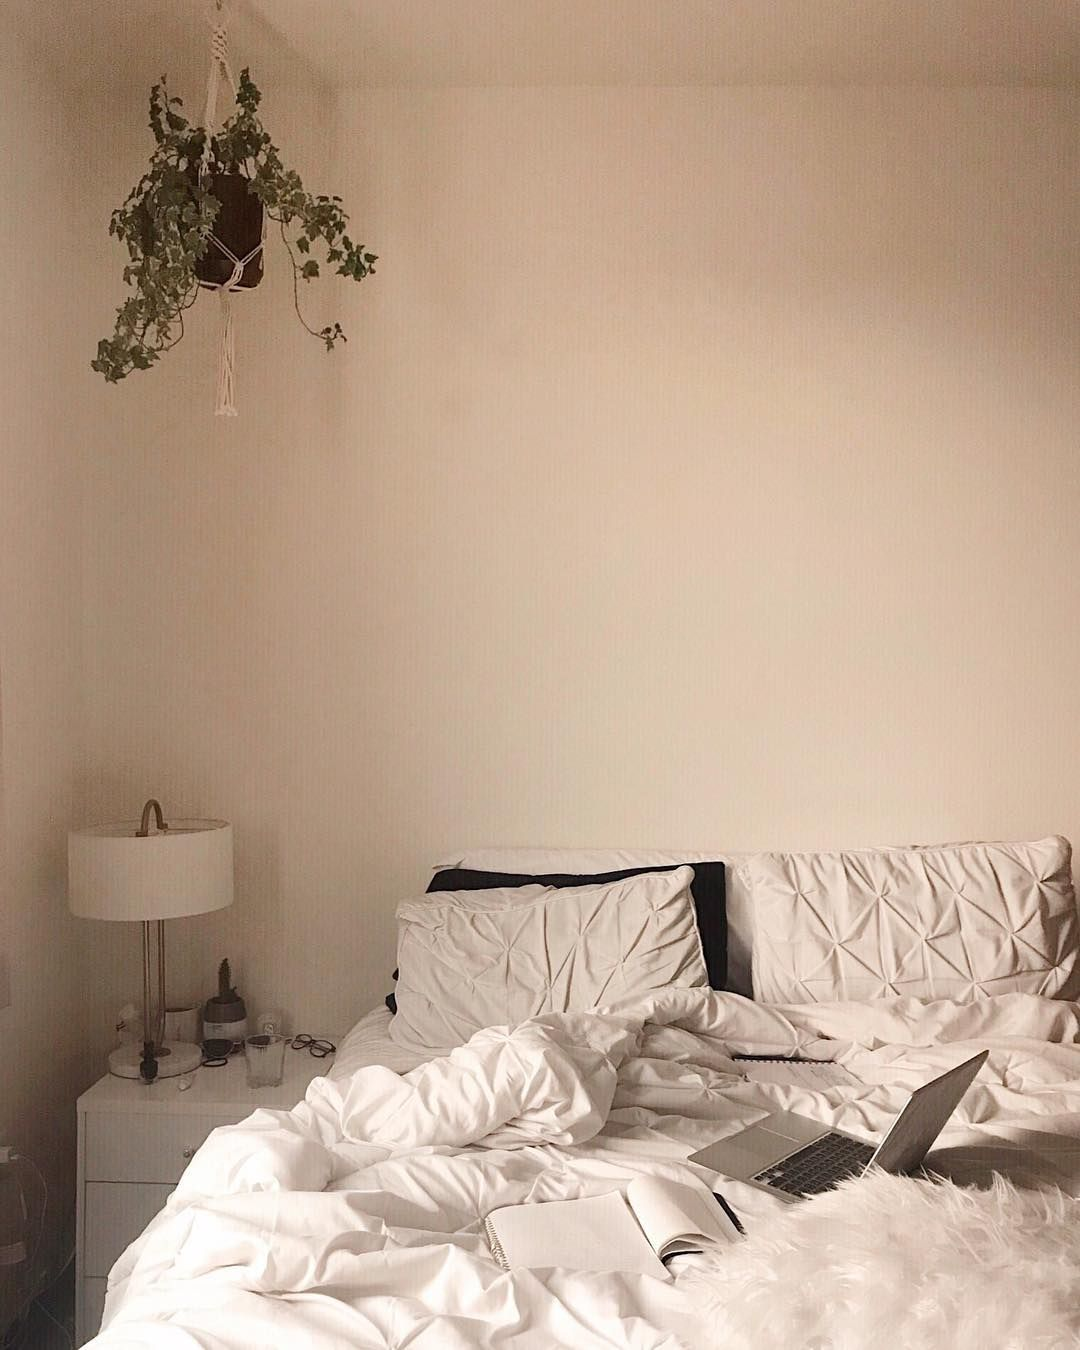 How to Create the Minimalist Dorm Room of Your Dreams images